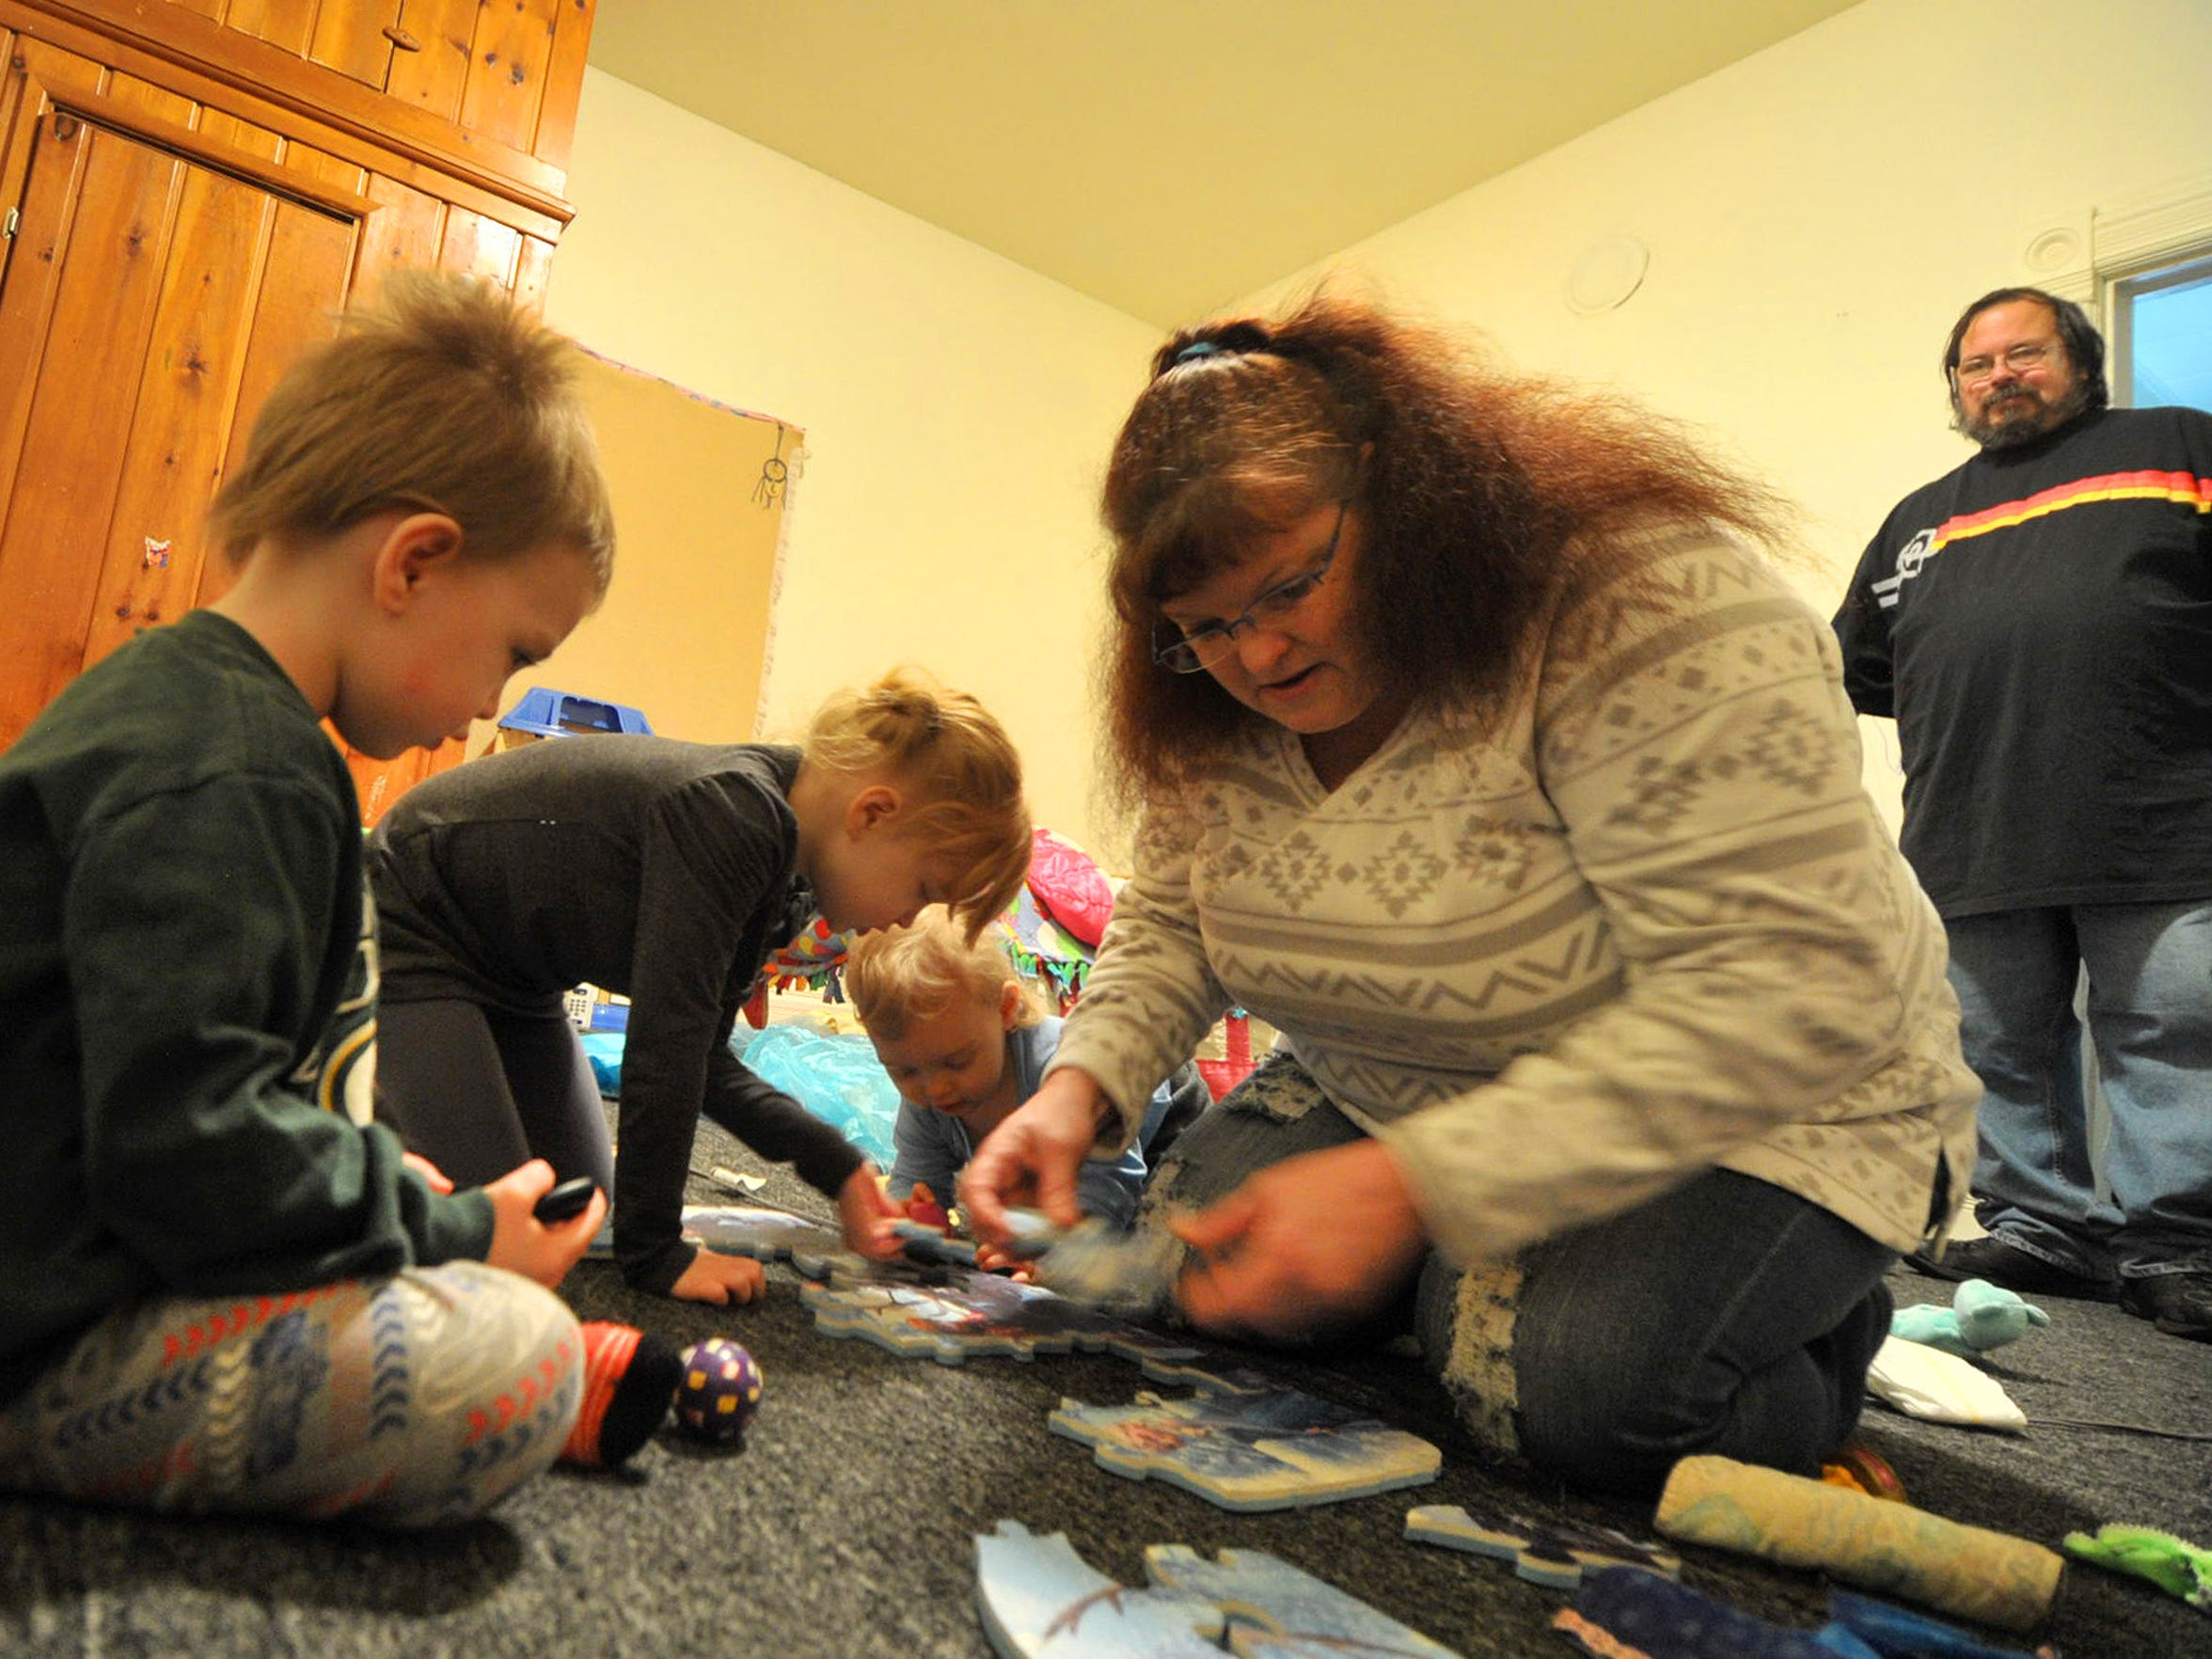 Wanda Worden helps Jaime, Peyton and Jax put together a puzzle in their new home, as Clint Worden looks on.